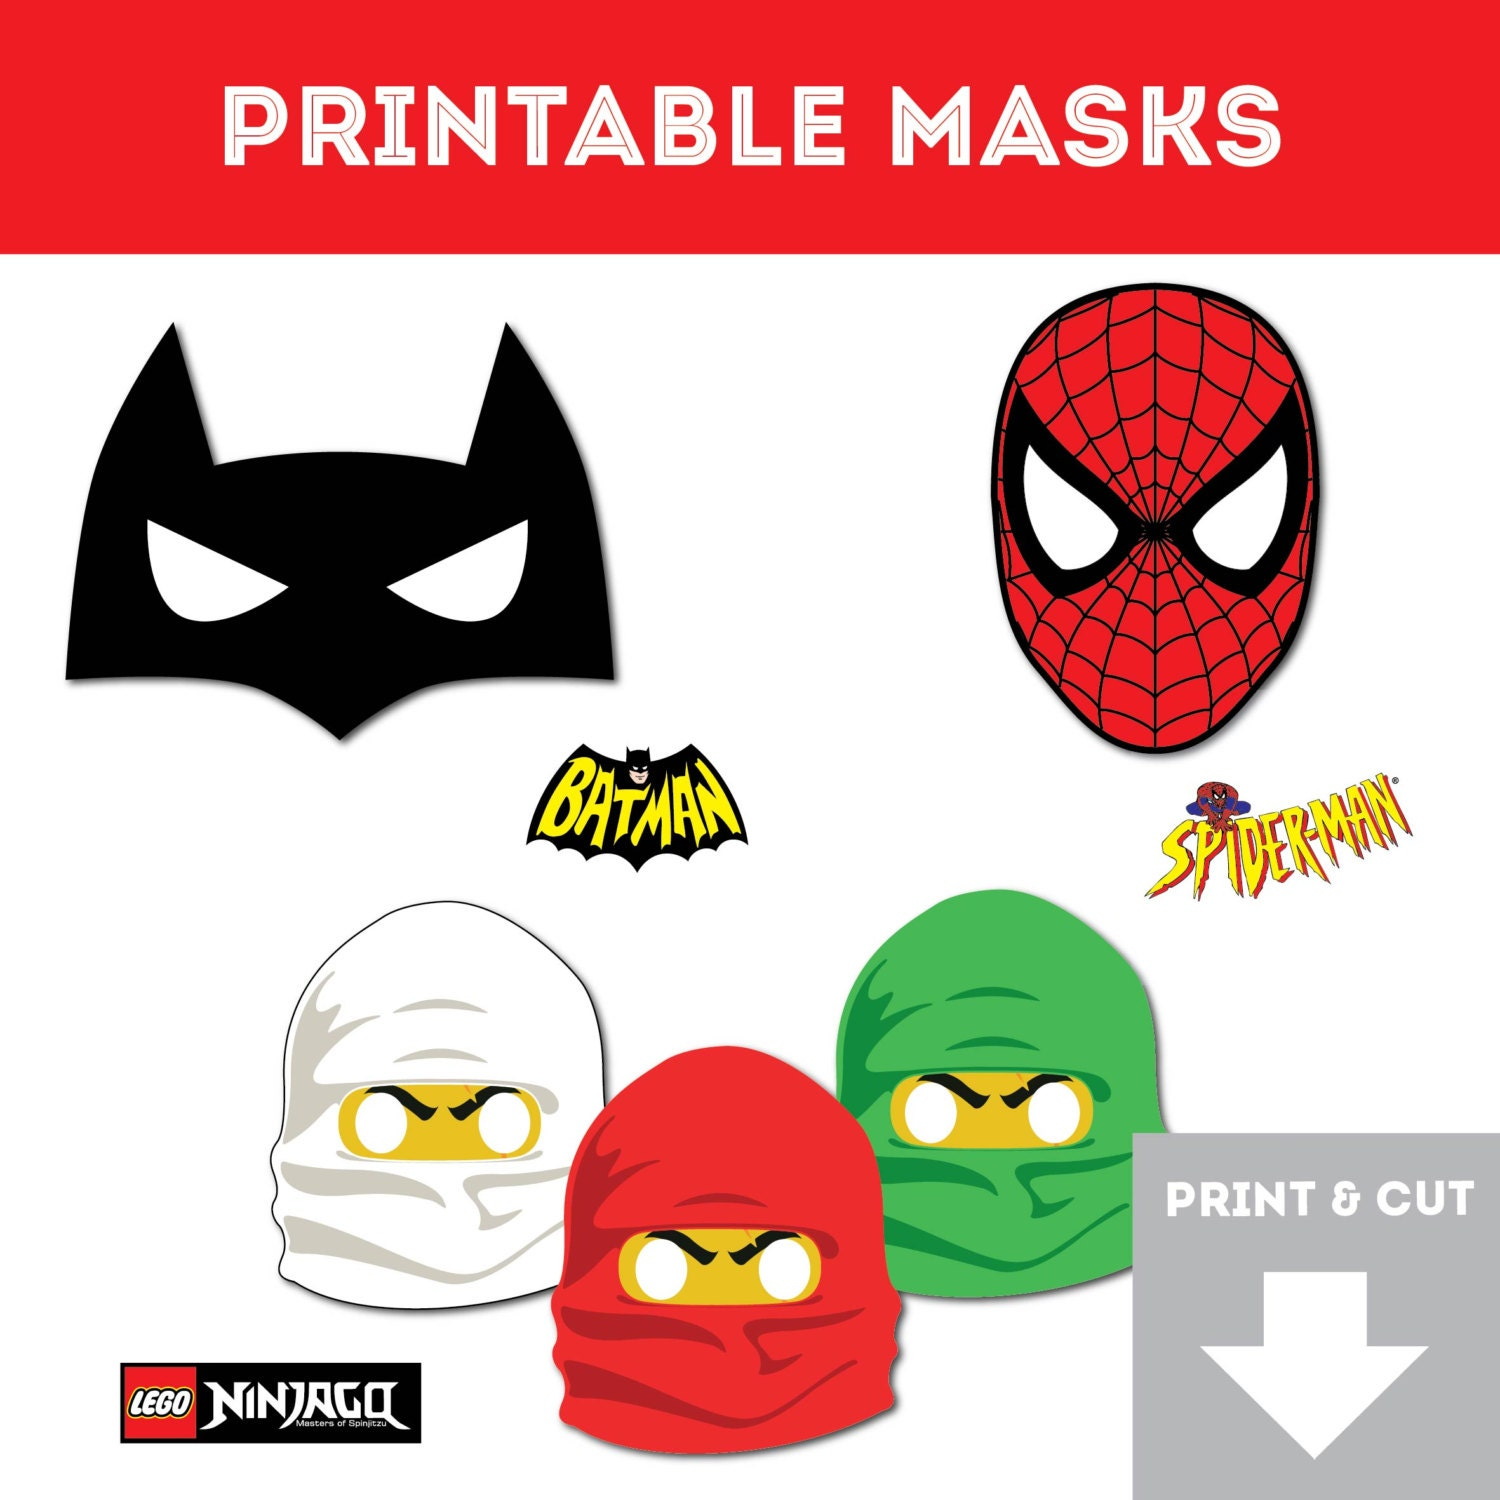 Invaluable image intended for ninjago mask printable